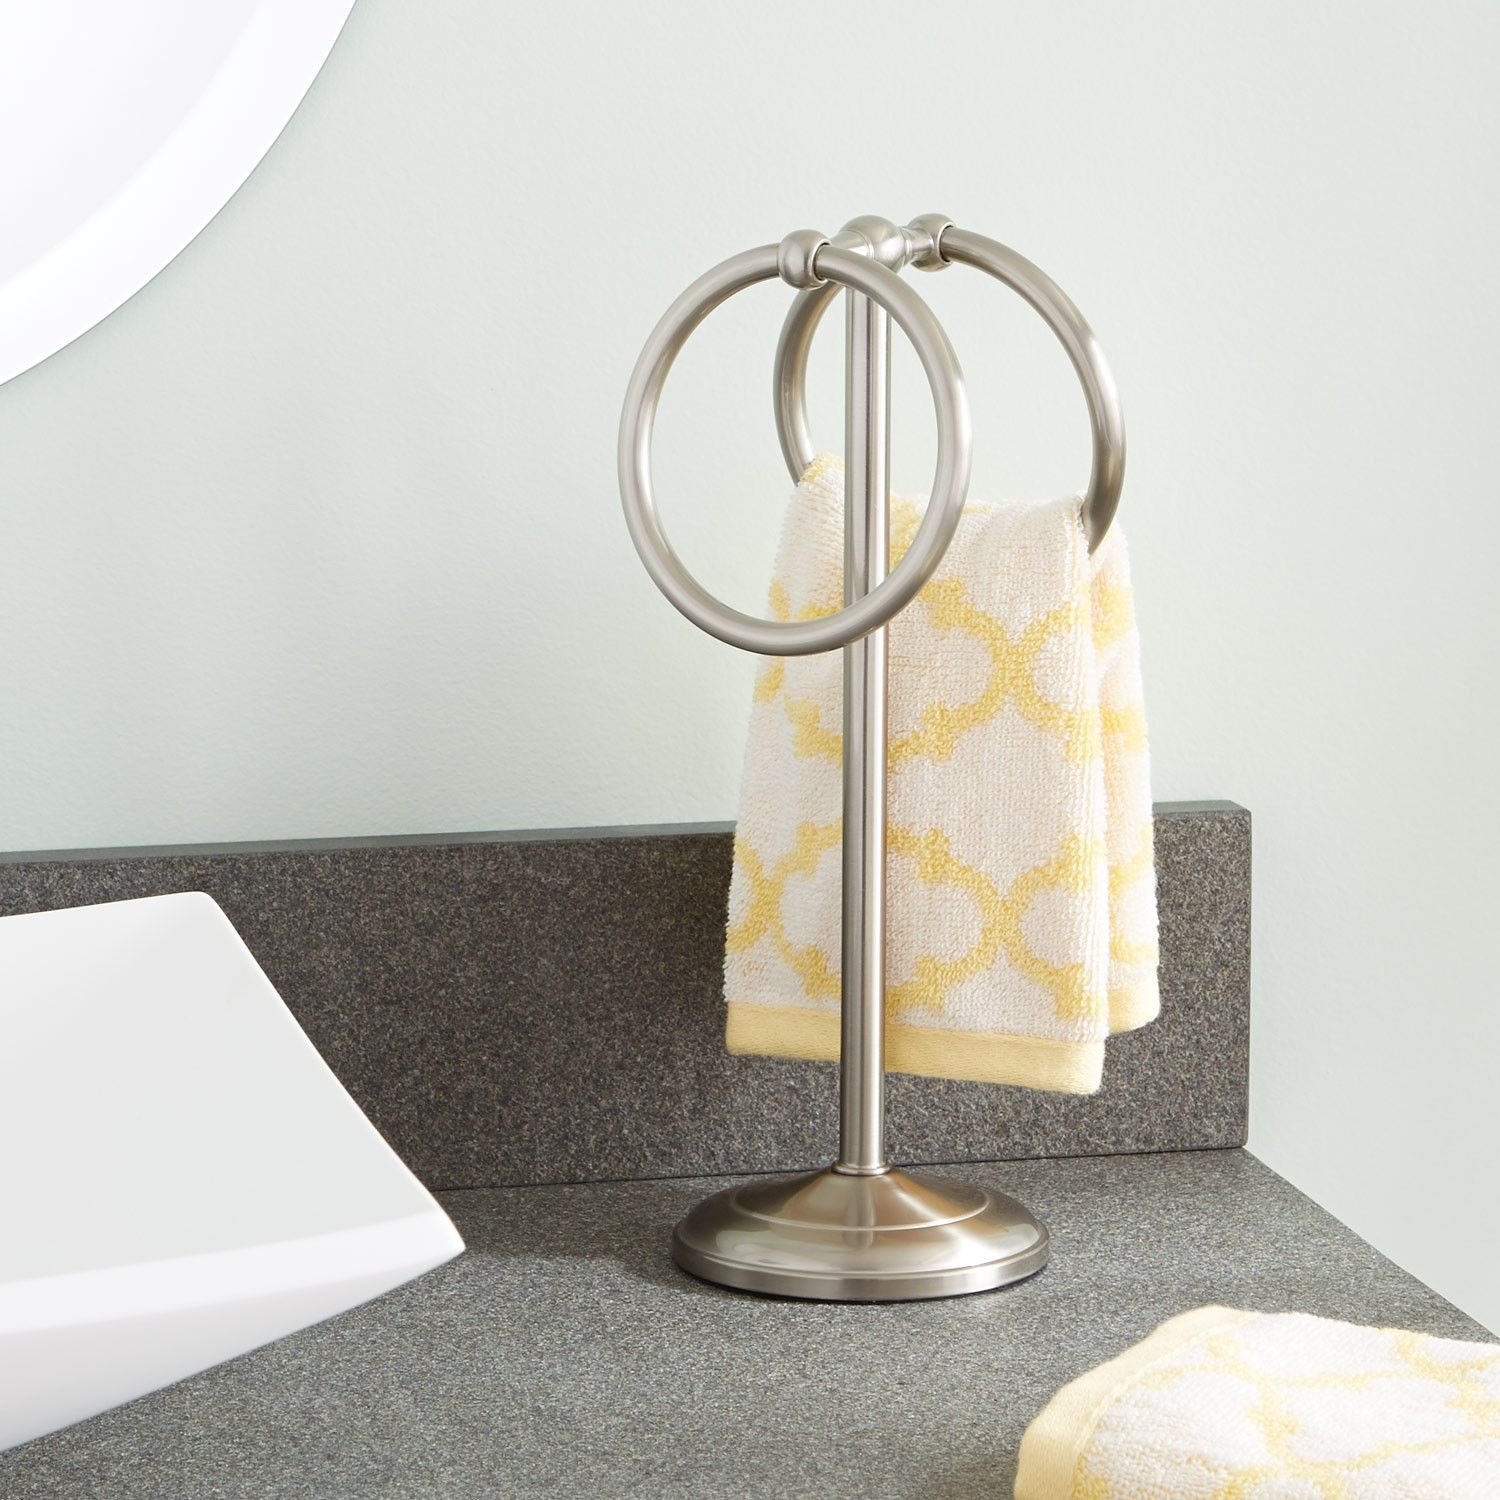 Drummond Countertop Towel Ring Towel Rings Towel Holder